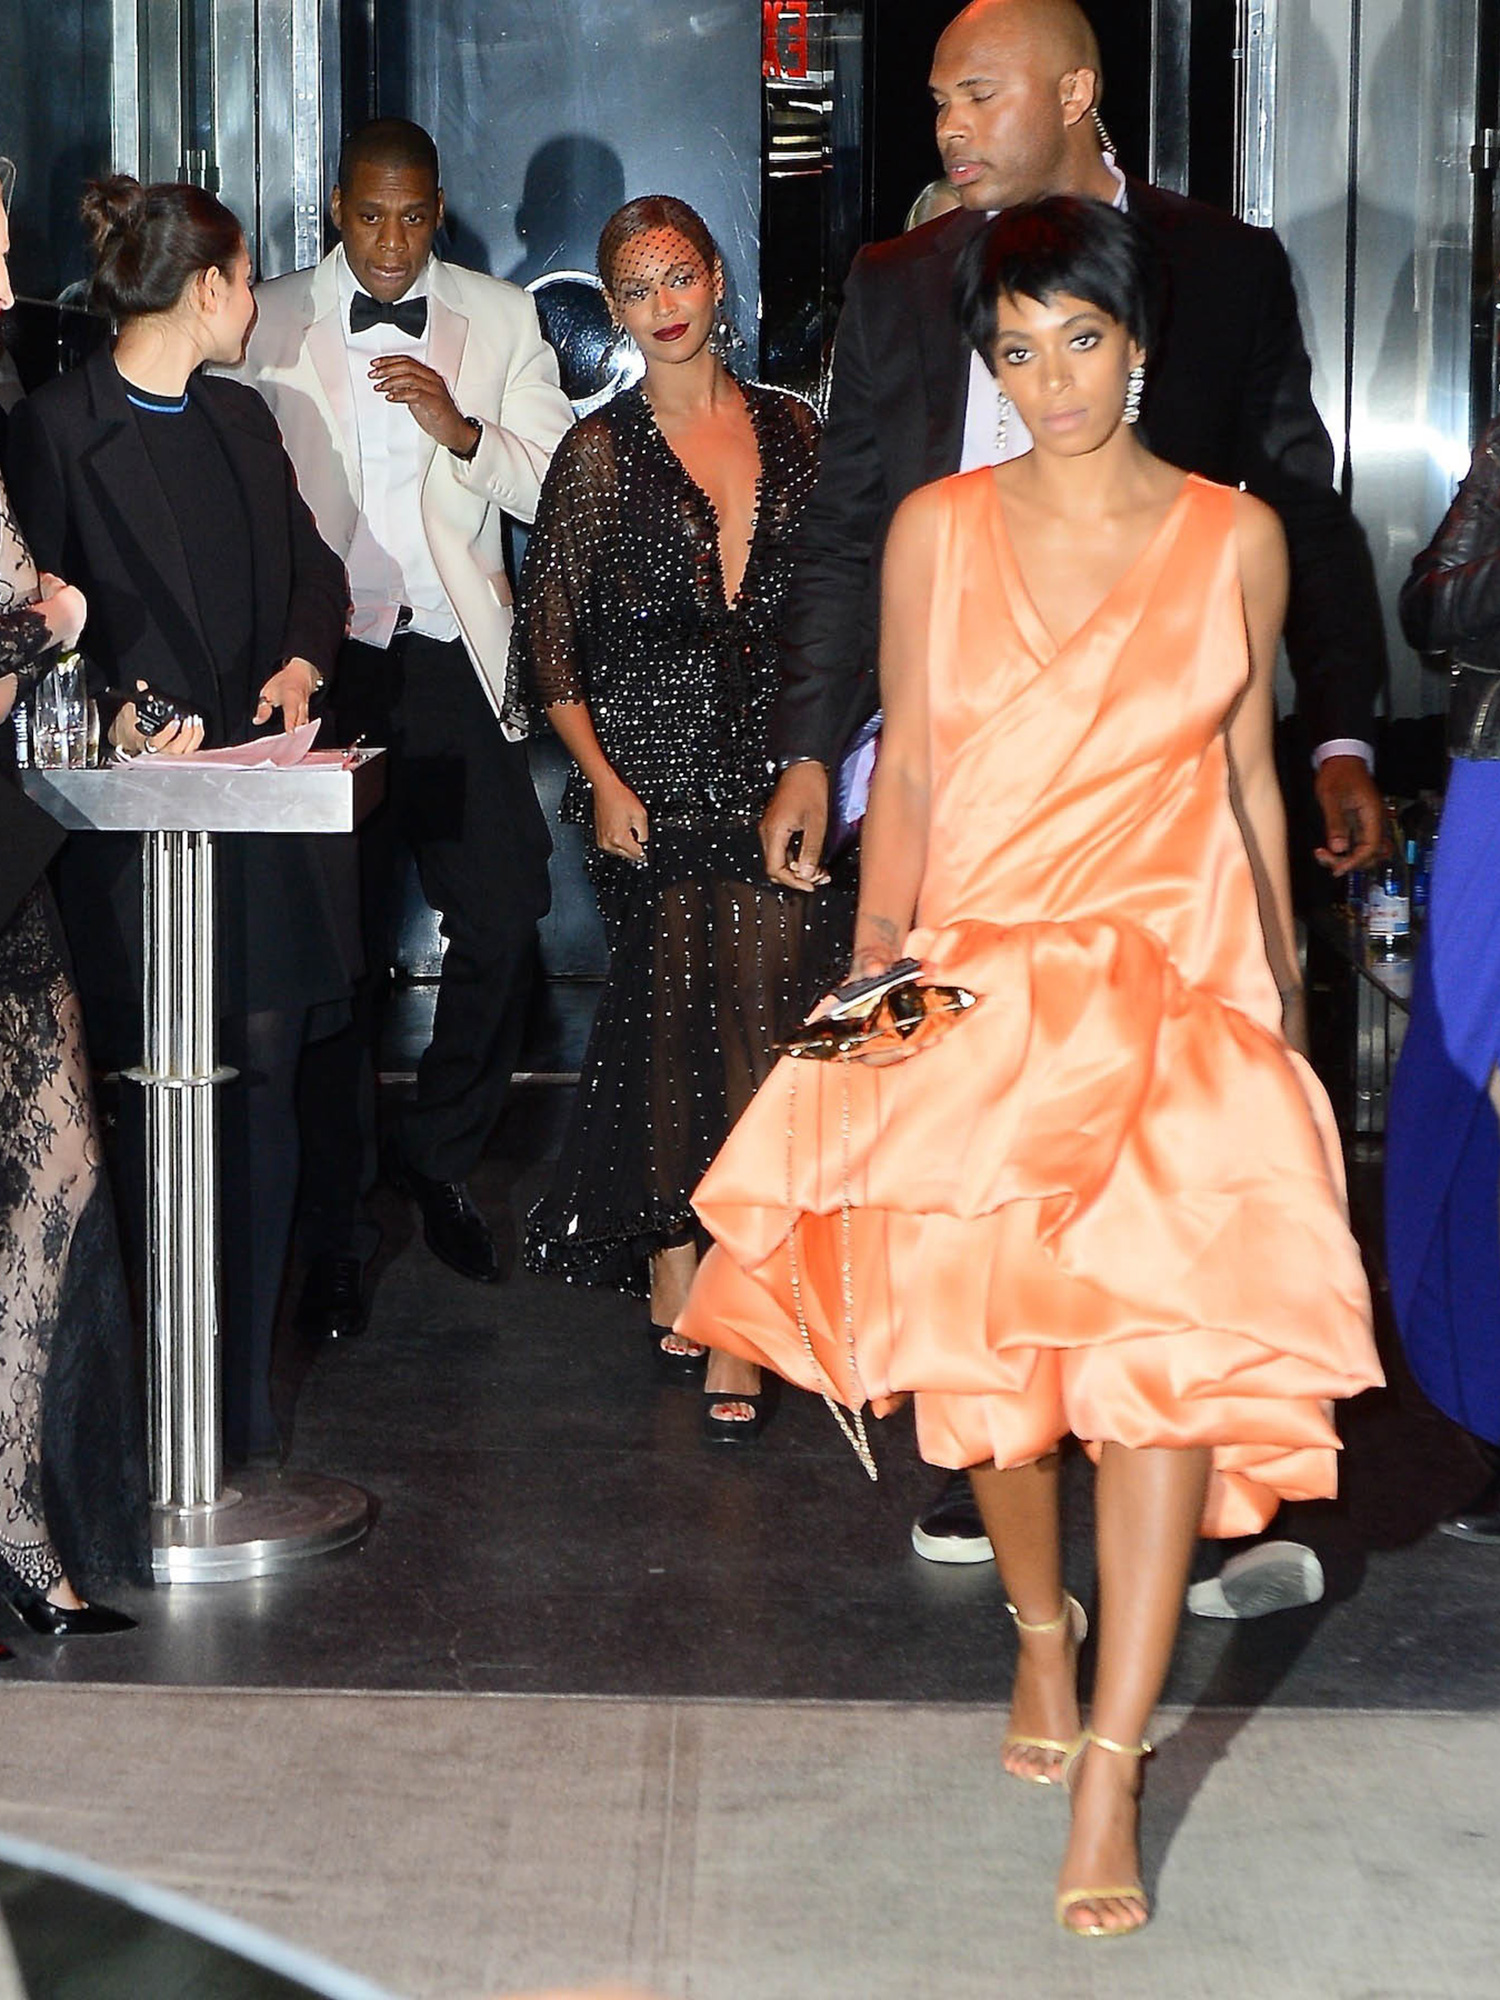 Beyonce, Jay-Z and Solange Knowles were seen leaving the Met Gala After Party at the Boom Boom Room in the Meatpacking District. Pictured: Jay-Z , Beyonce, Solange Knowles Ref: SPL752015 060514 Picture by: Splash News Splash News and Pictures Los Angeles: 310-821-2666 New York: 212-619-2666 London: 870-934-2666 photodesk@splashnews.com